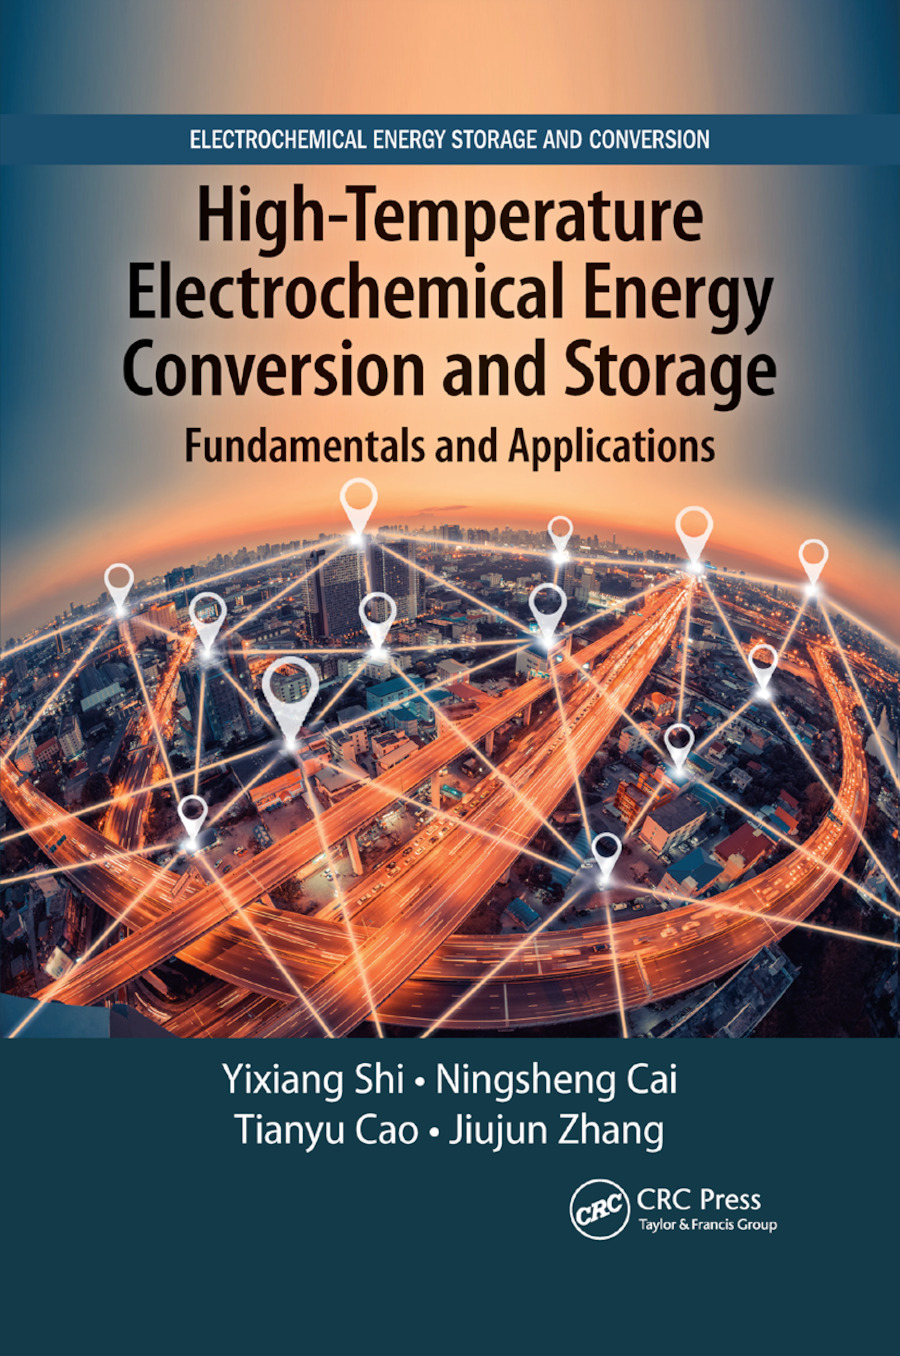 High-Temperature Electrochemical Energy Conversion and Storage: Fundamentals and Applications book cover